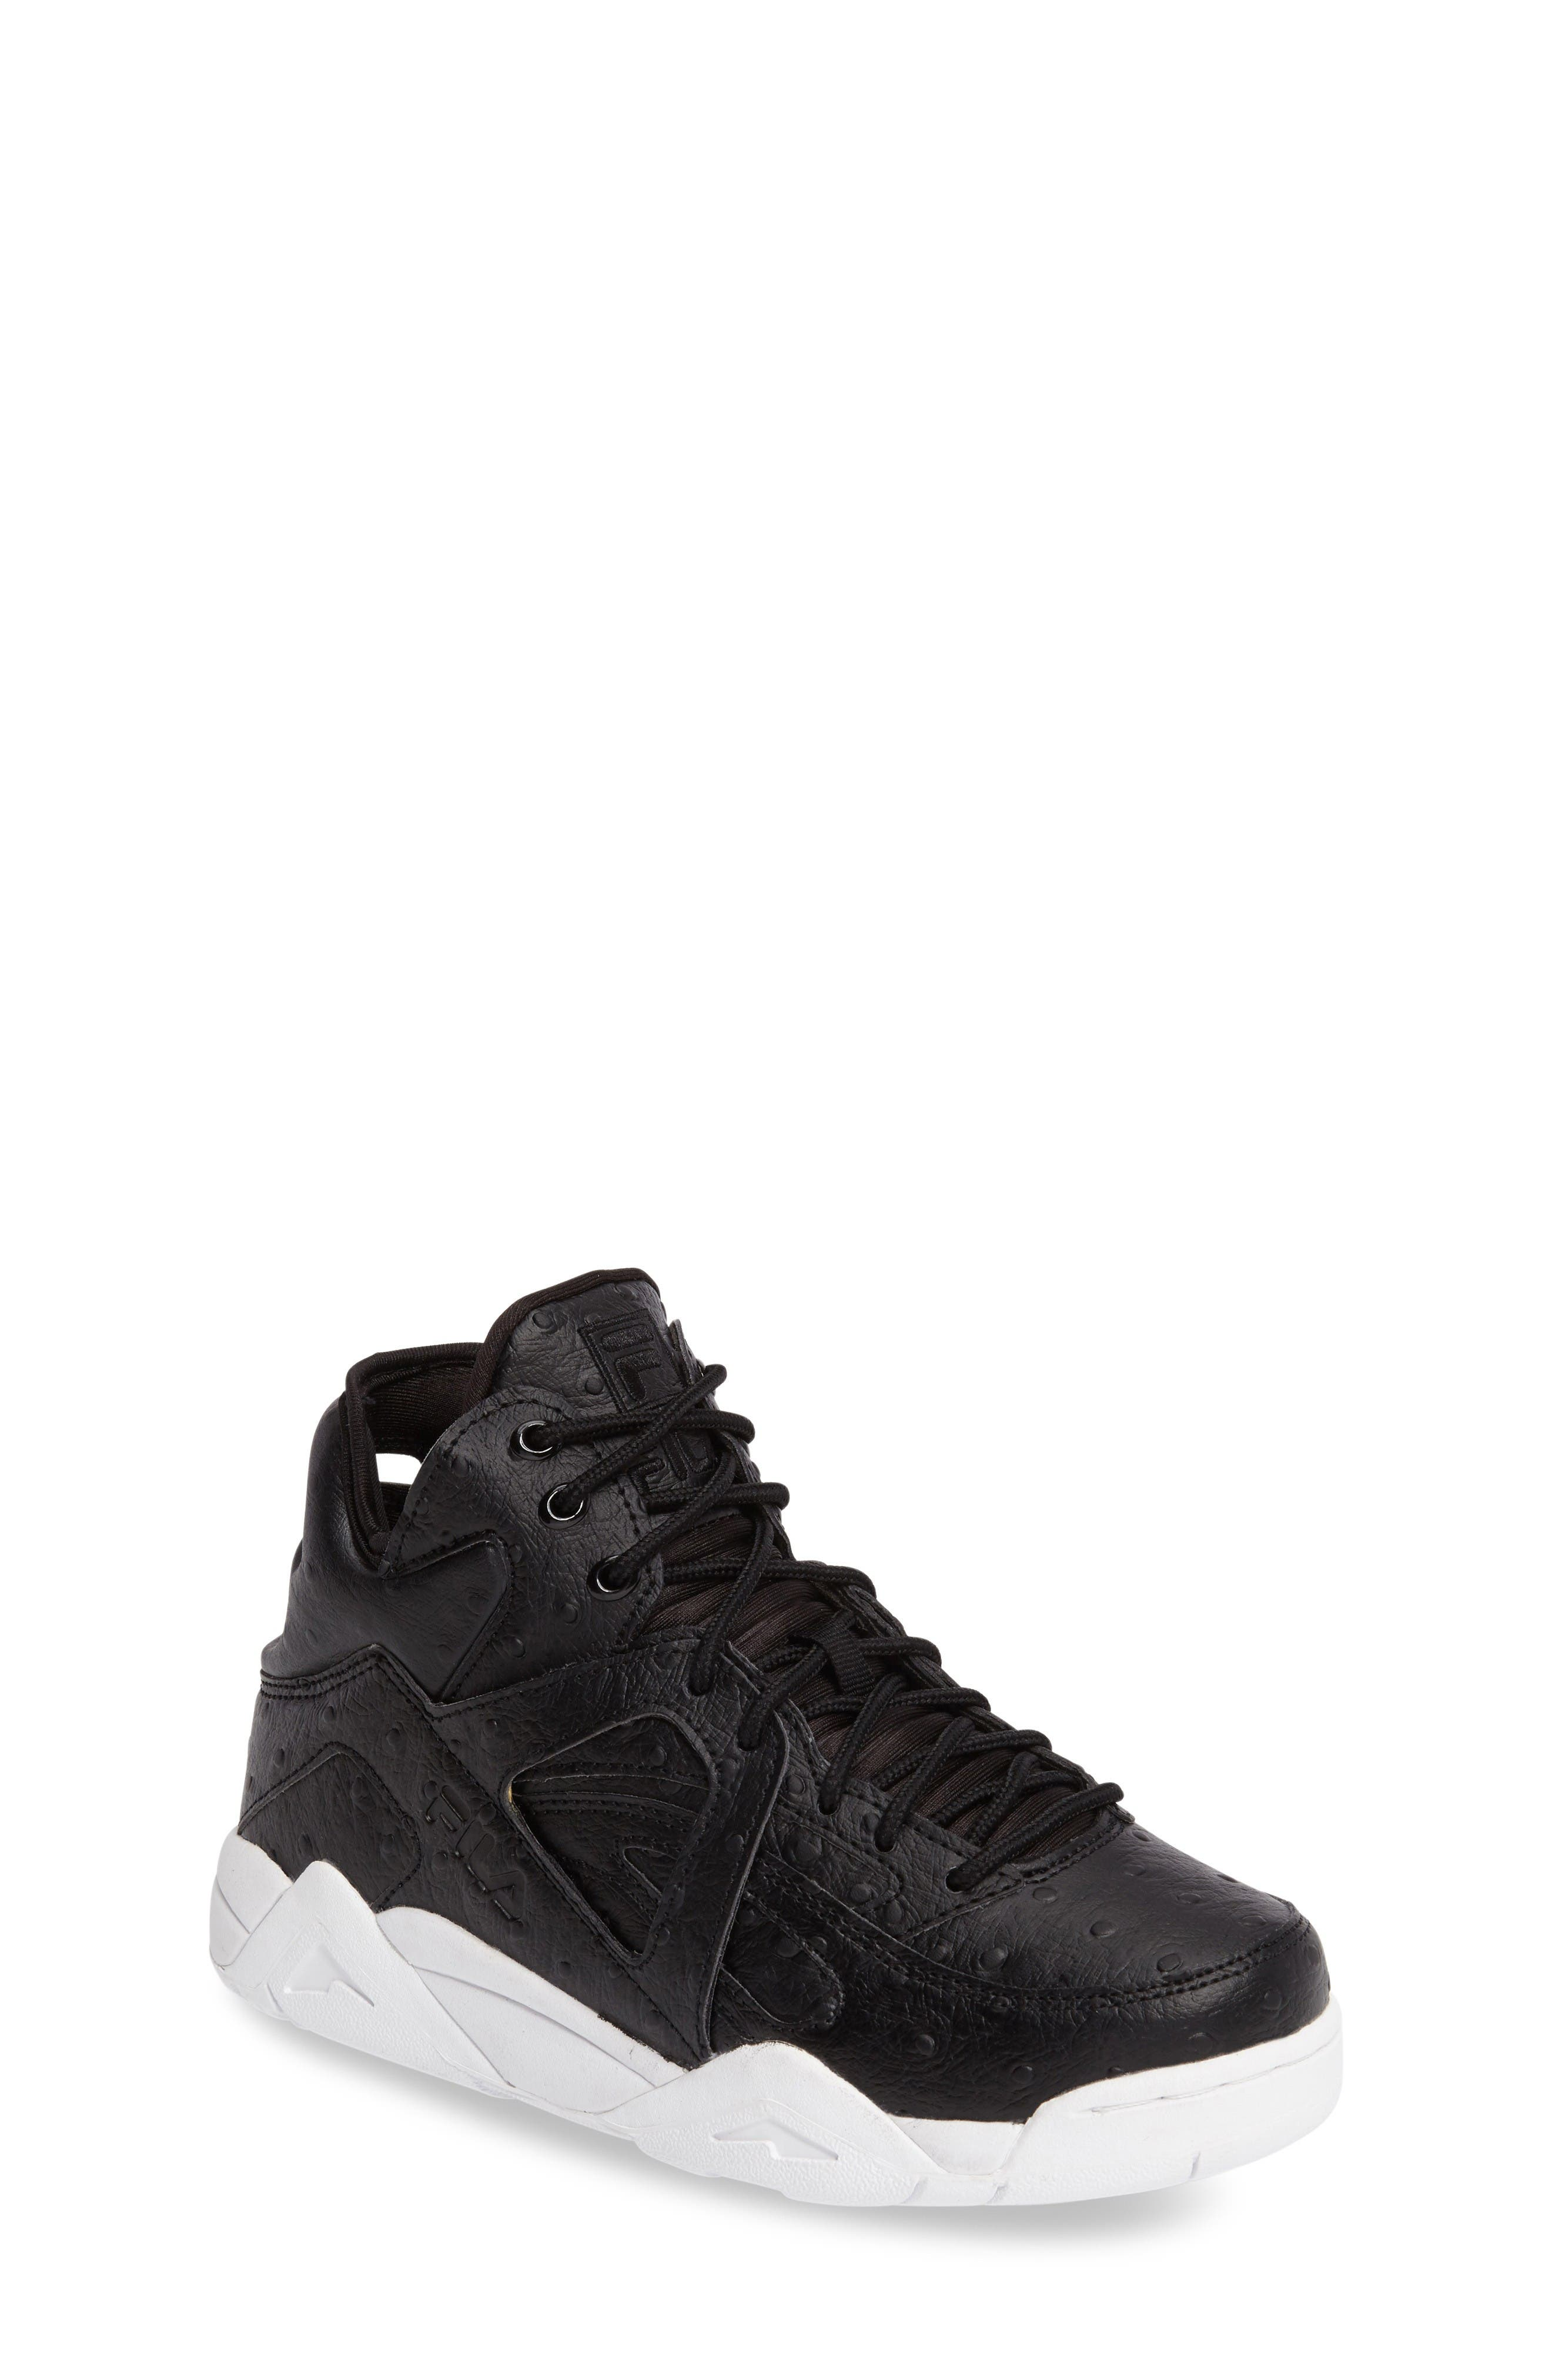 The Cage Ostrich Sneaker,                         Main,                         color, Black